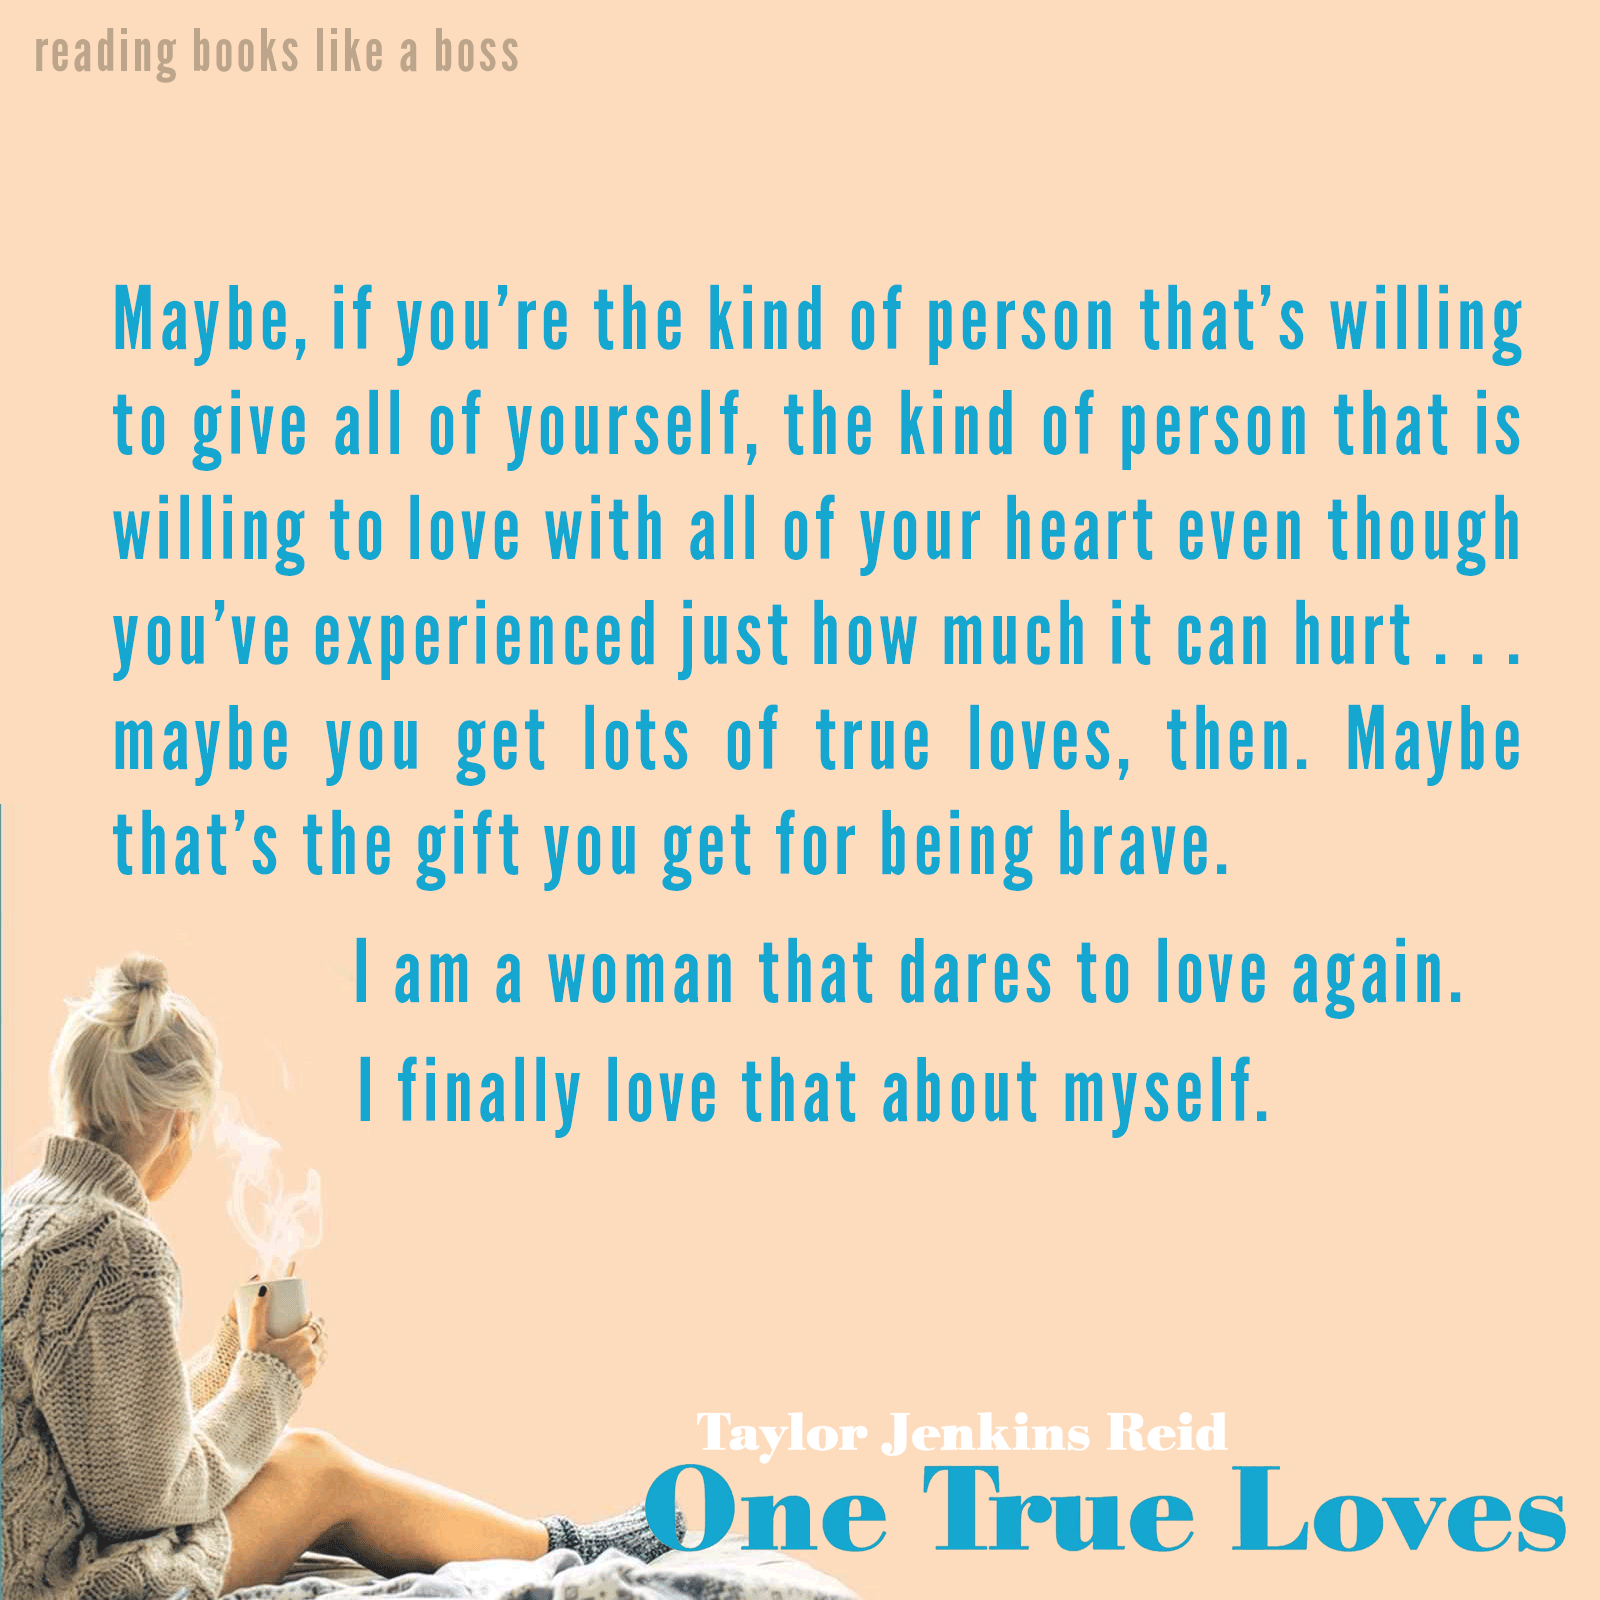 Quote - One True Loves by Taylor Jenkins Reid